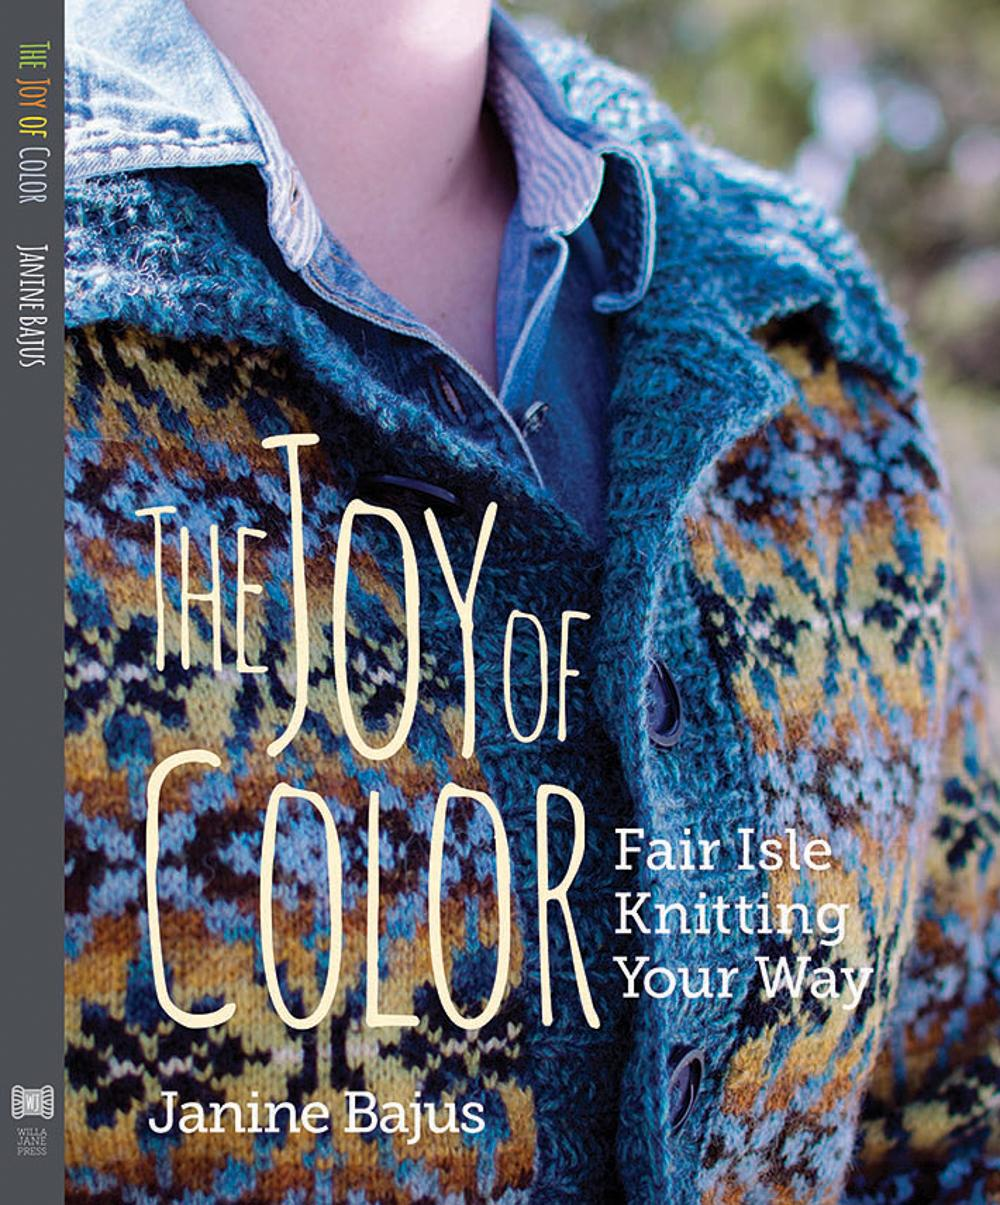 Joy of Color front cover image